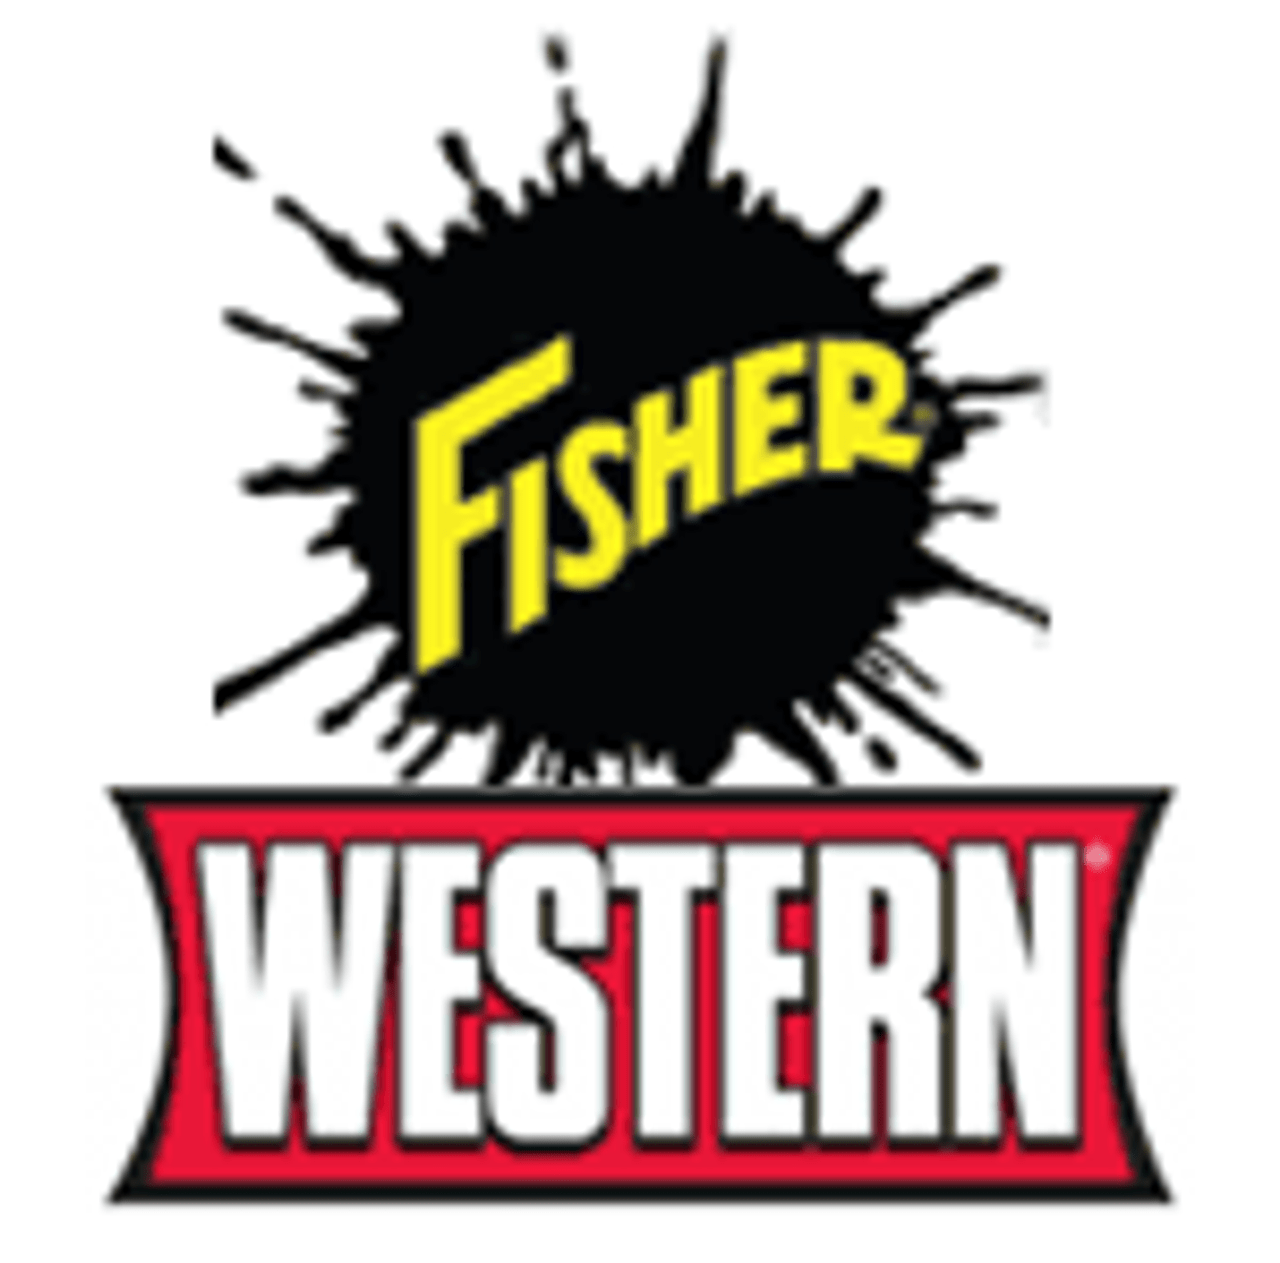 56283 - FISHER - WESTERN SHIELD